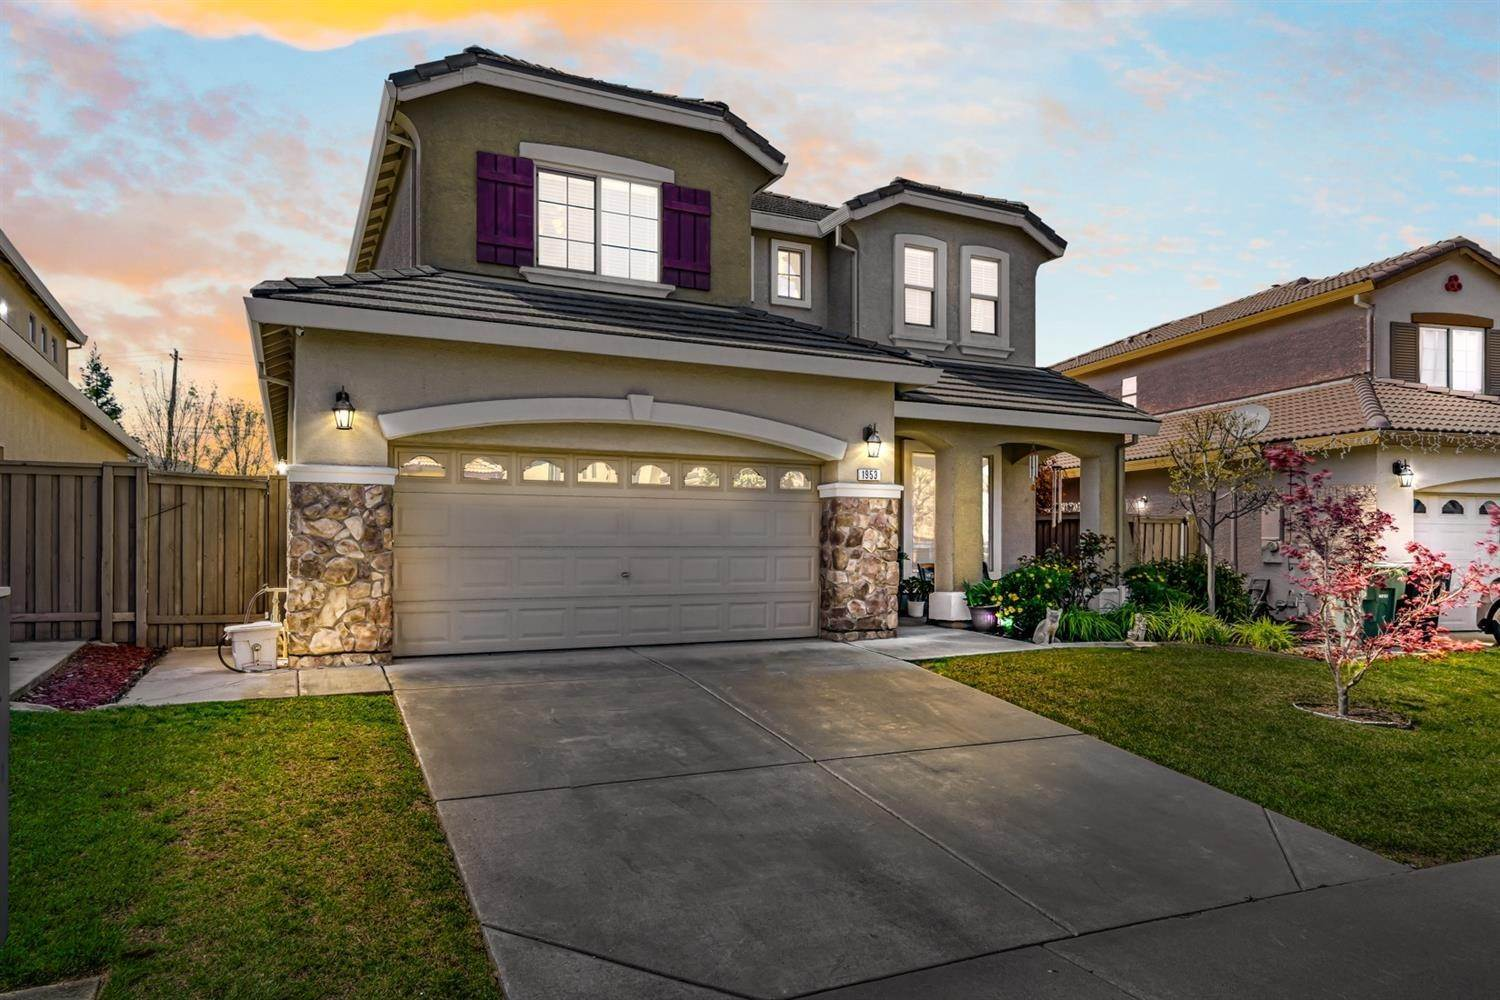 Single Family Homes for Active at 1953 Sevilla Drive Roseville, California 95747 United States